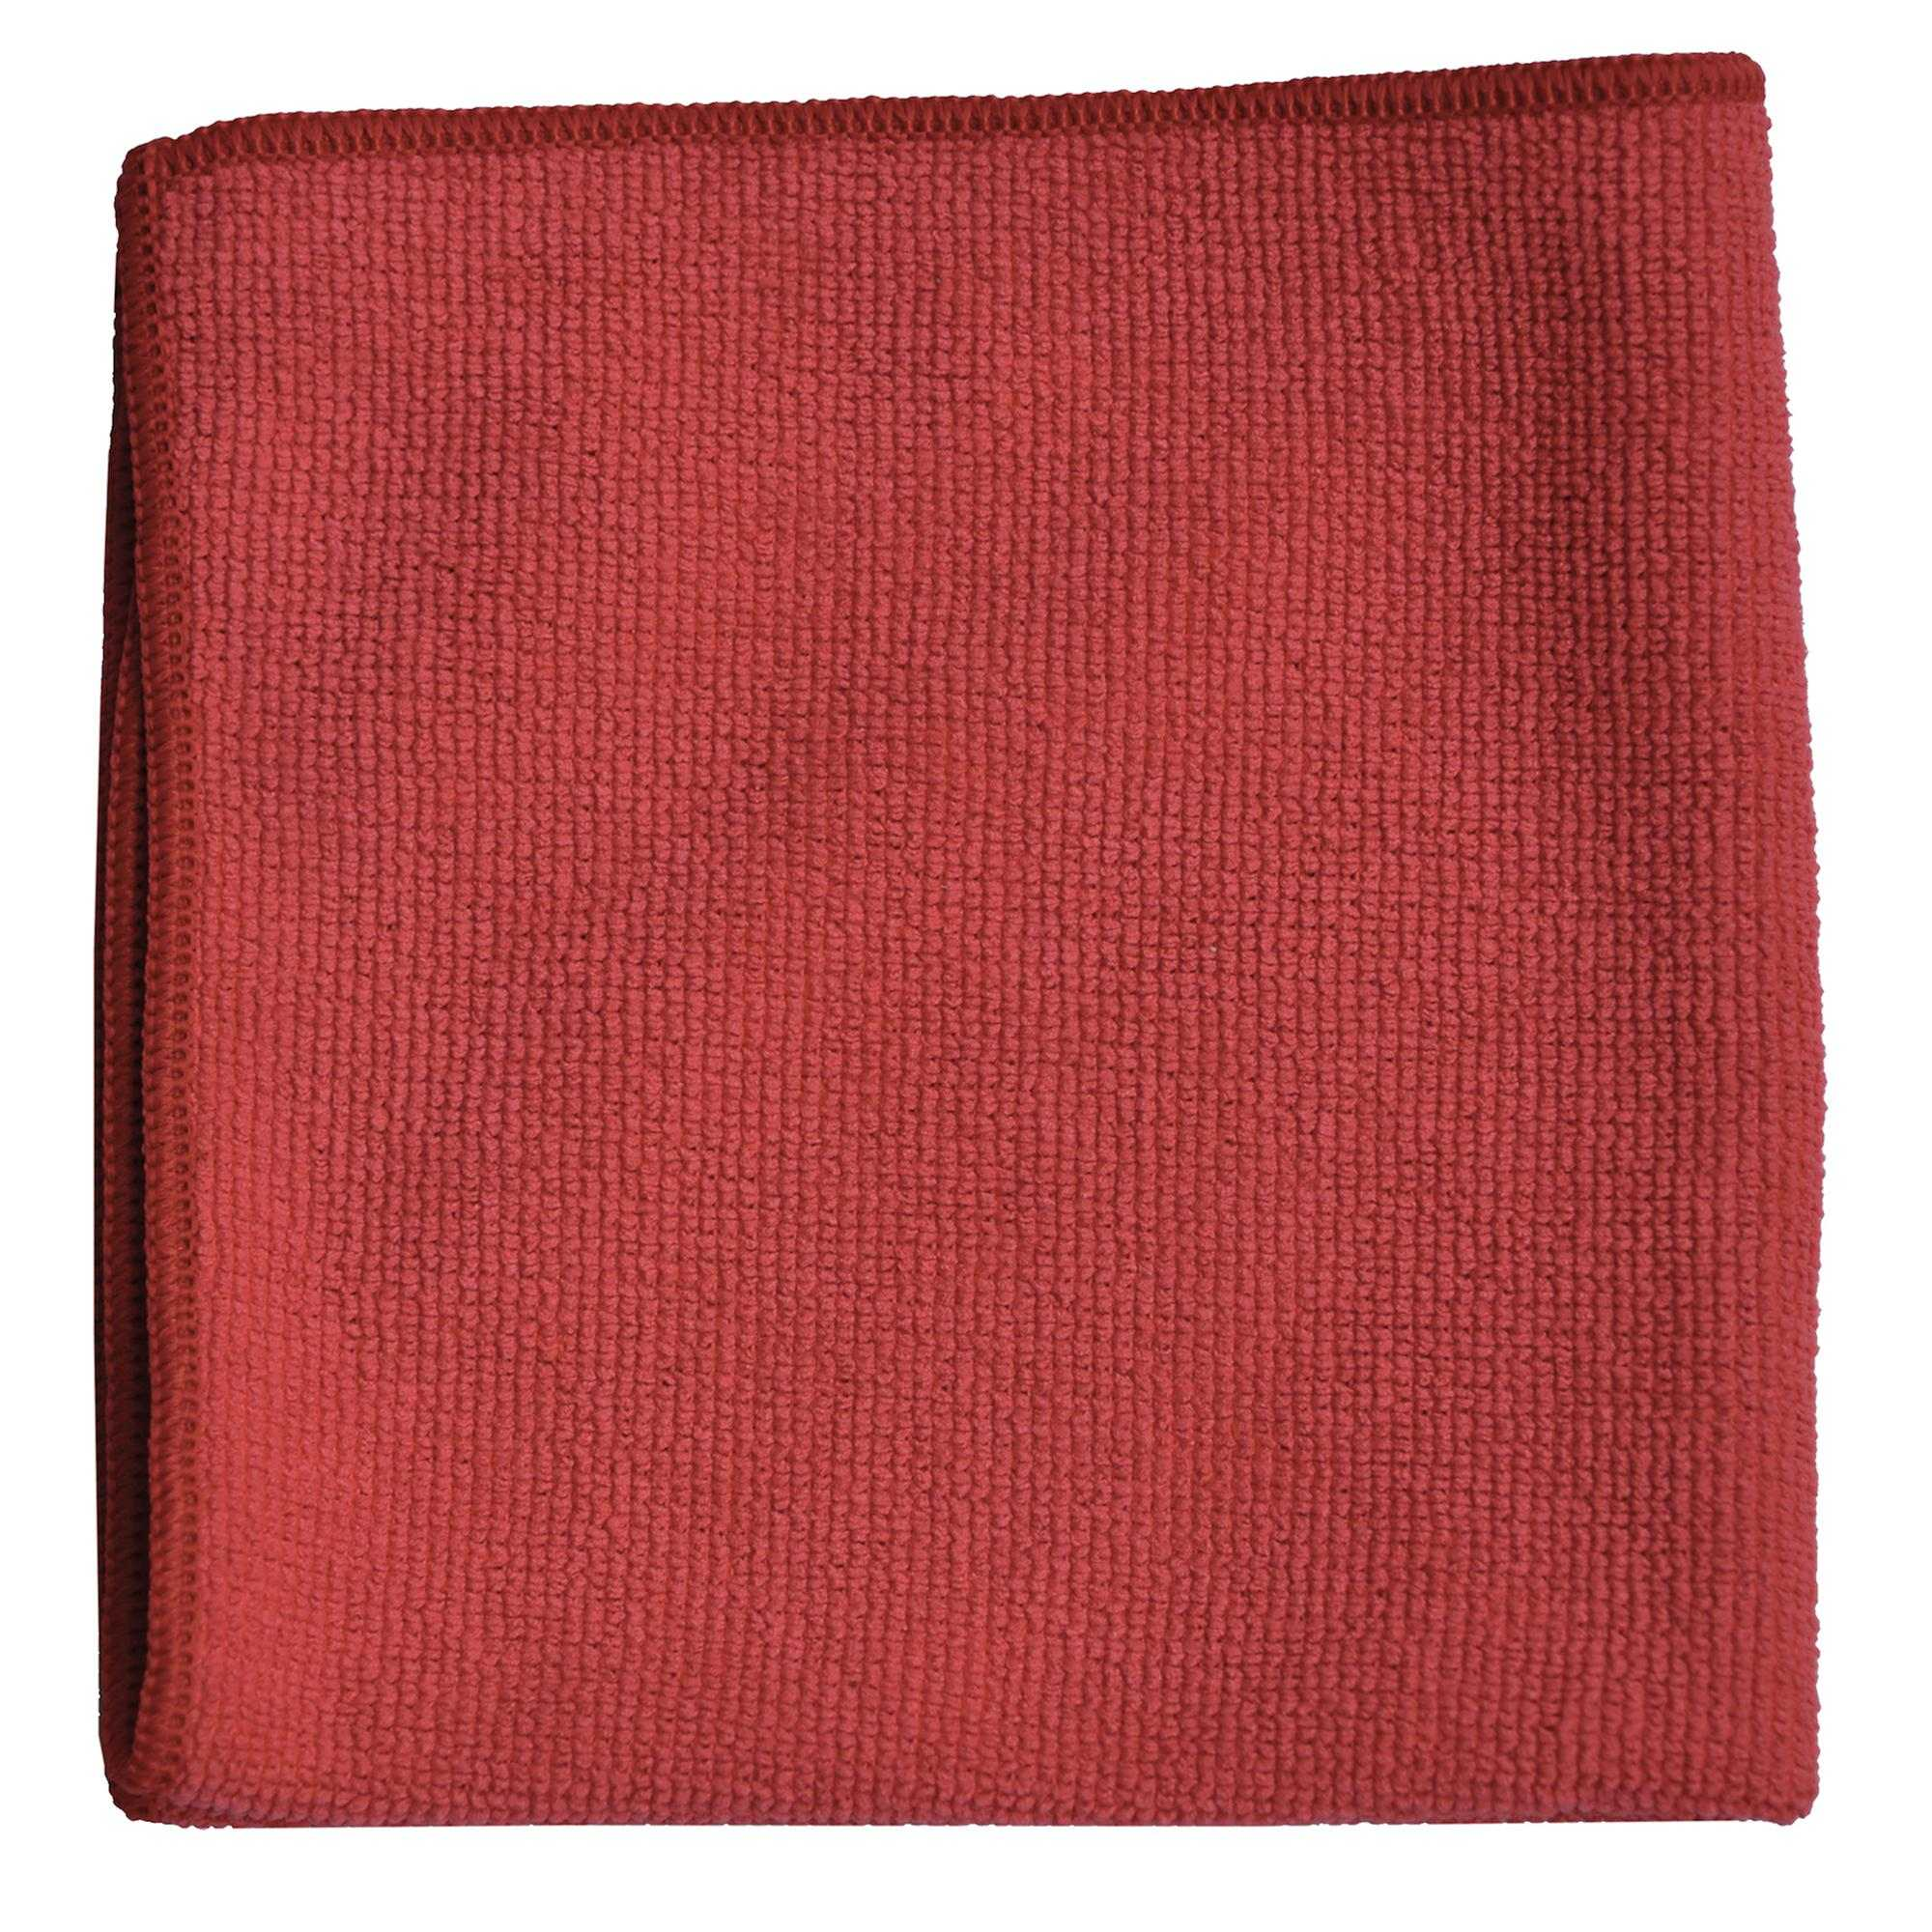 D7524115%20MyMicro%20Cloth%20Red%202000x2000px.jpg